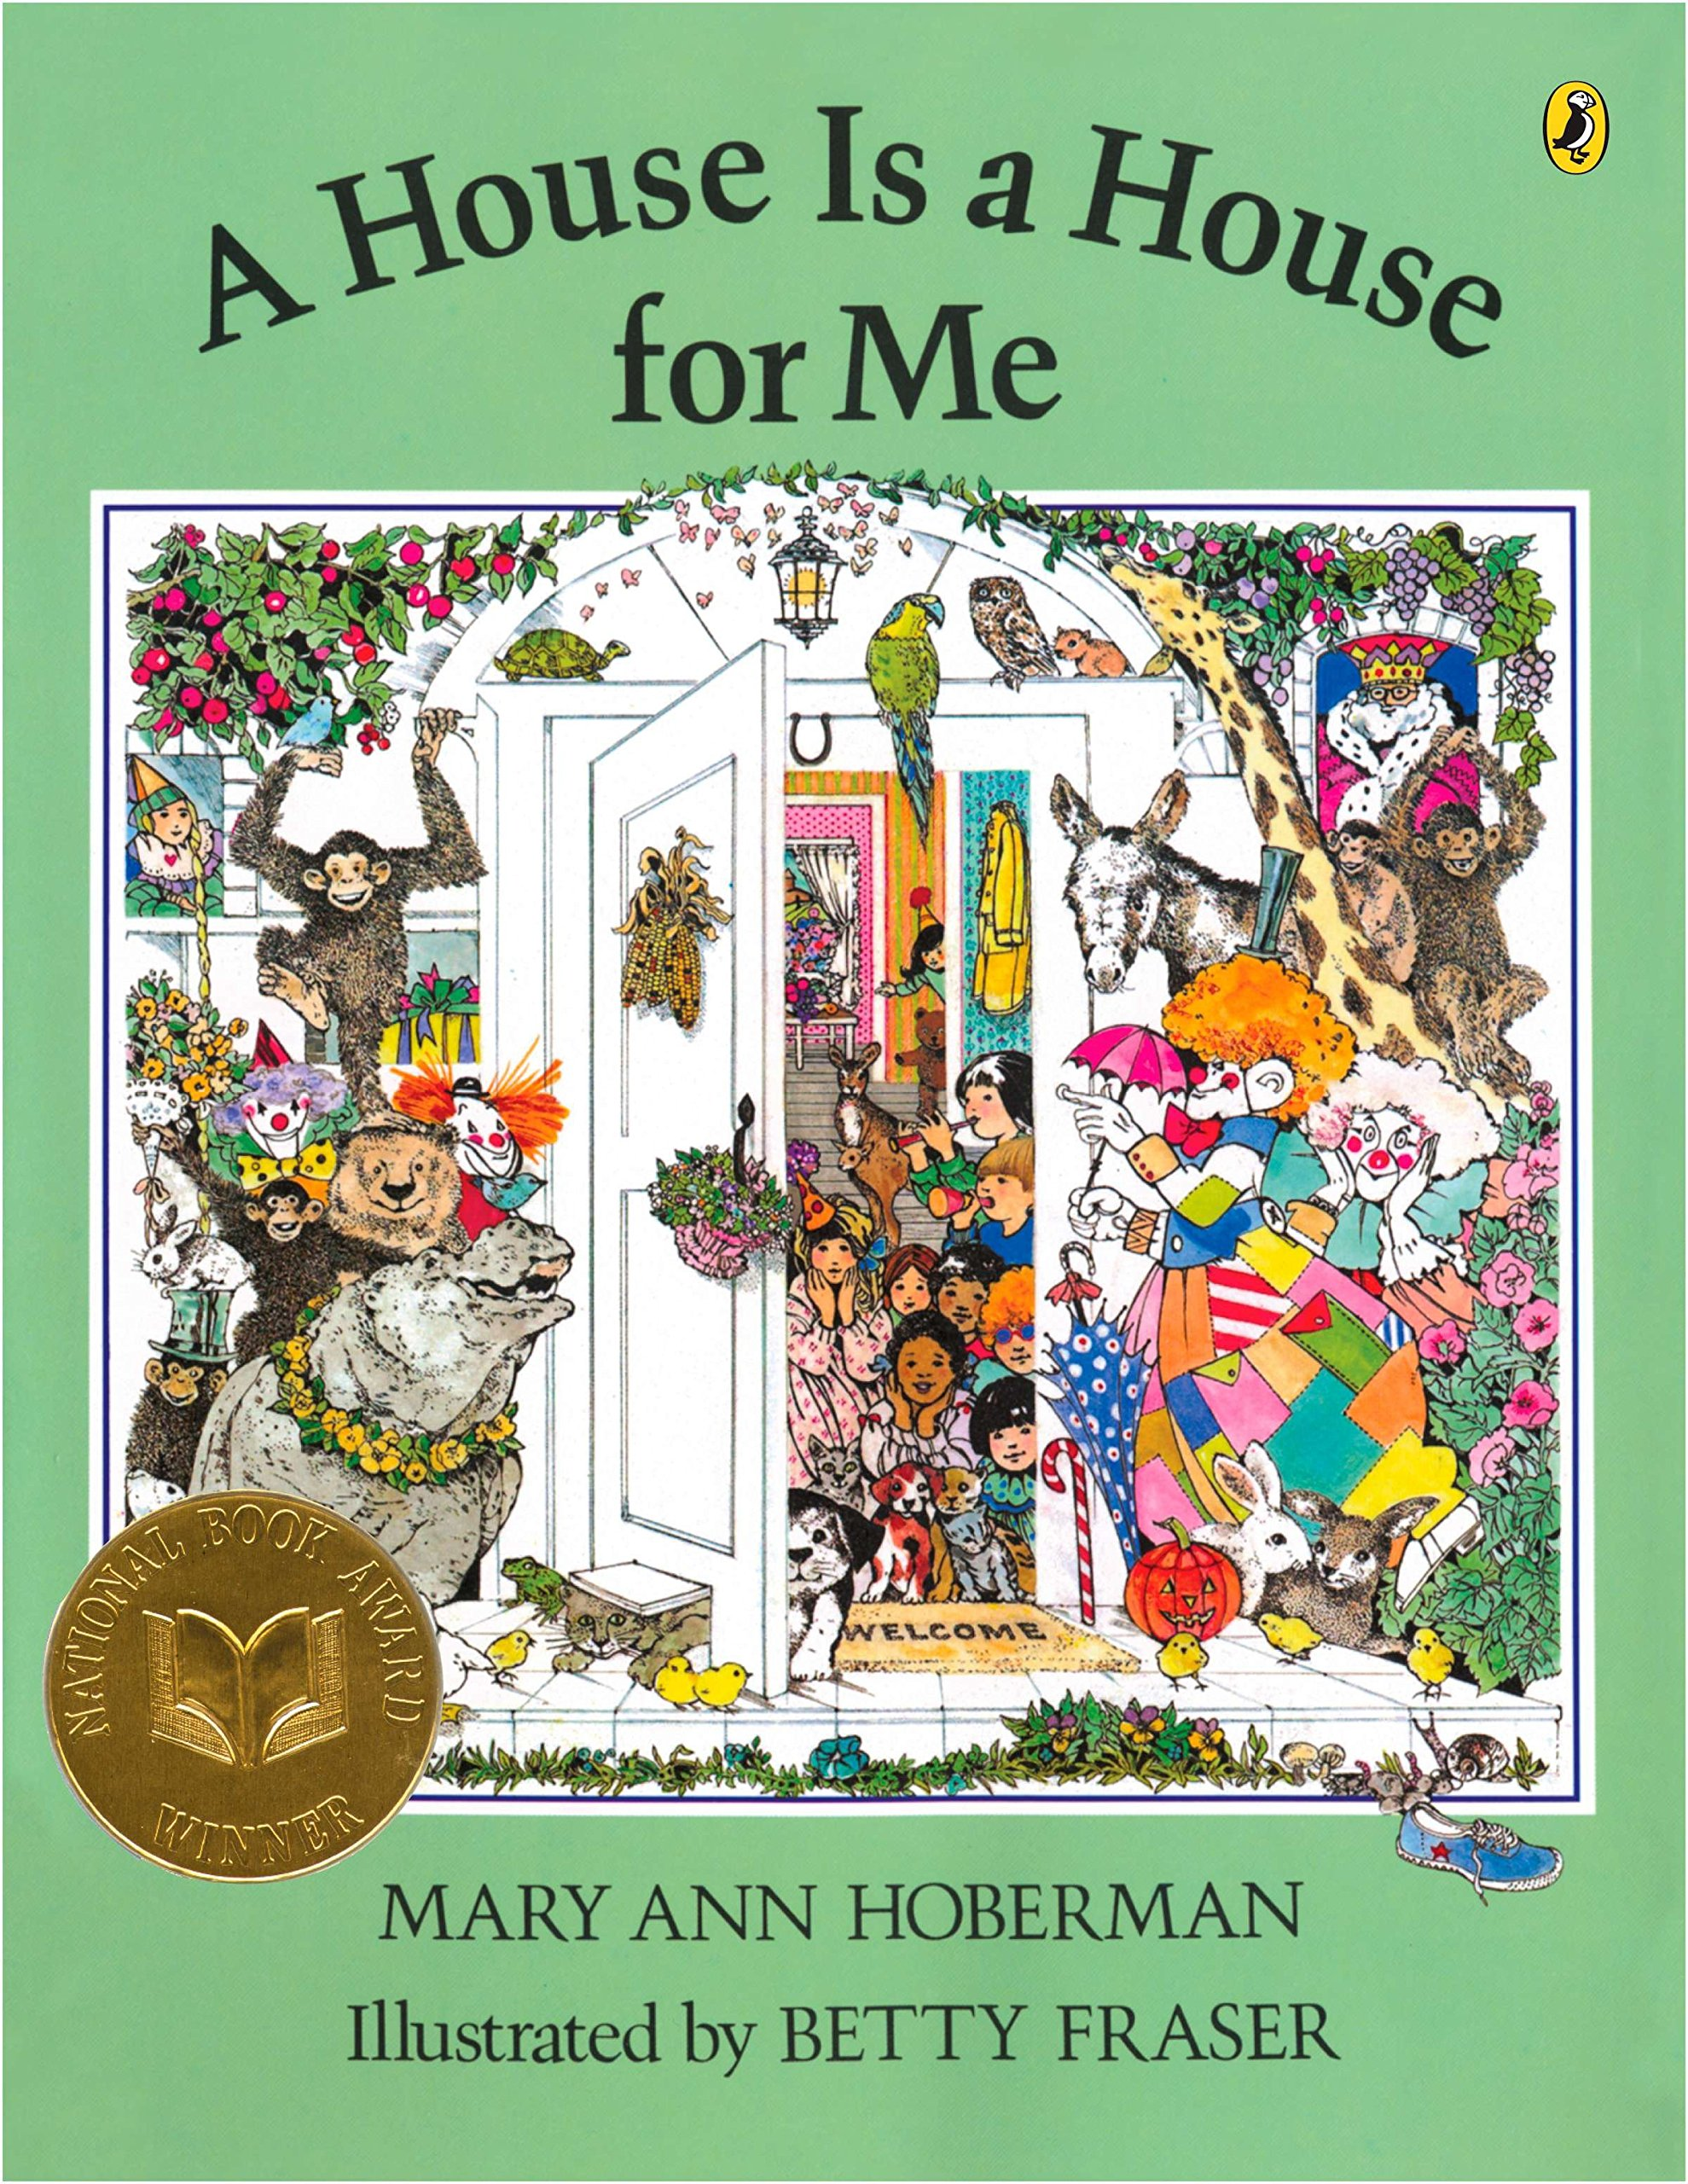 A house is a house for me by mary ann hoberman online dating